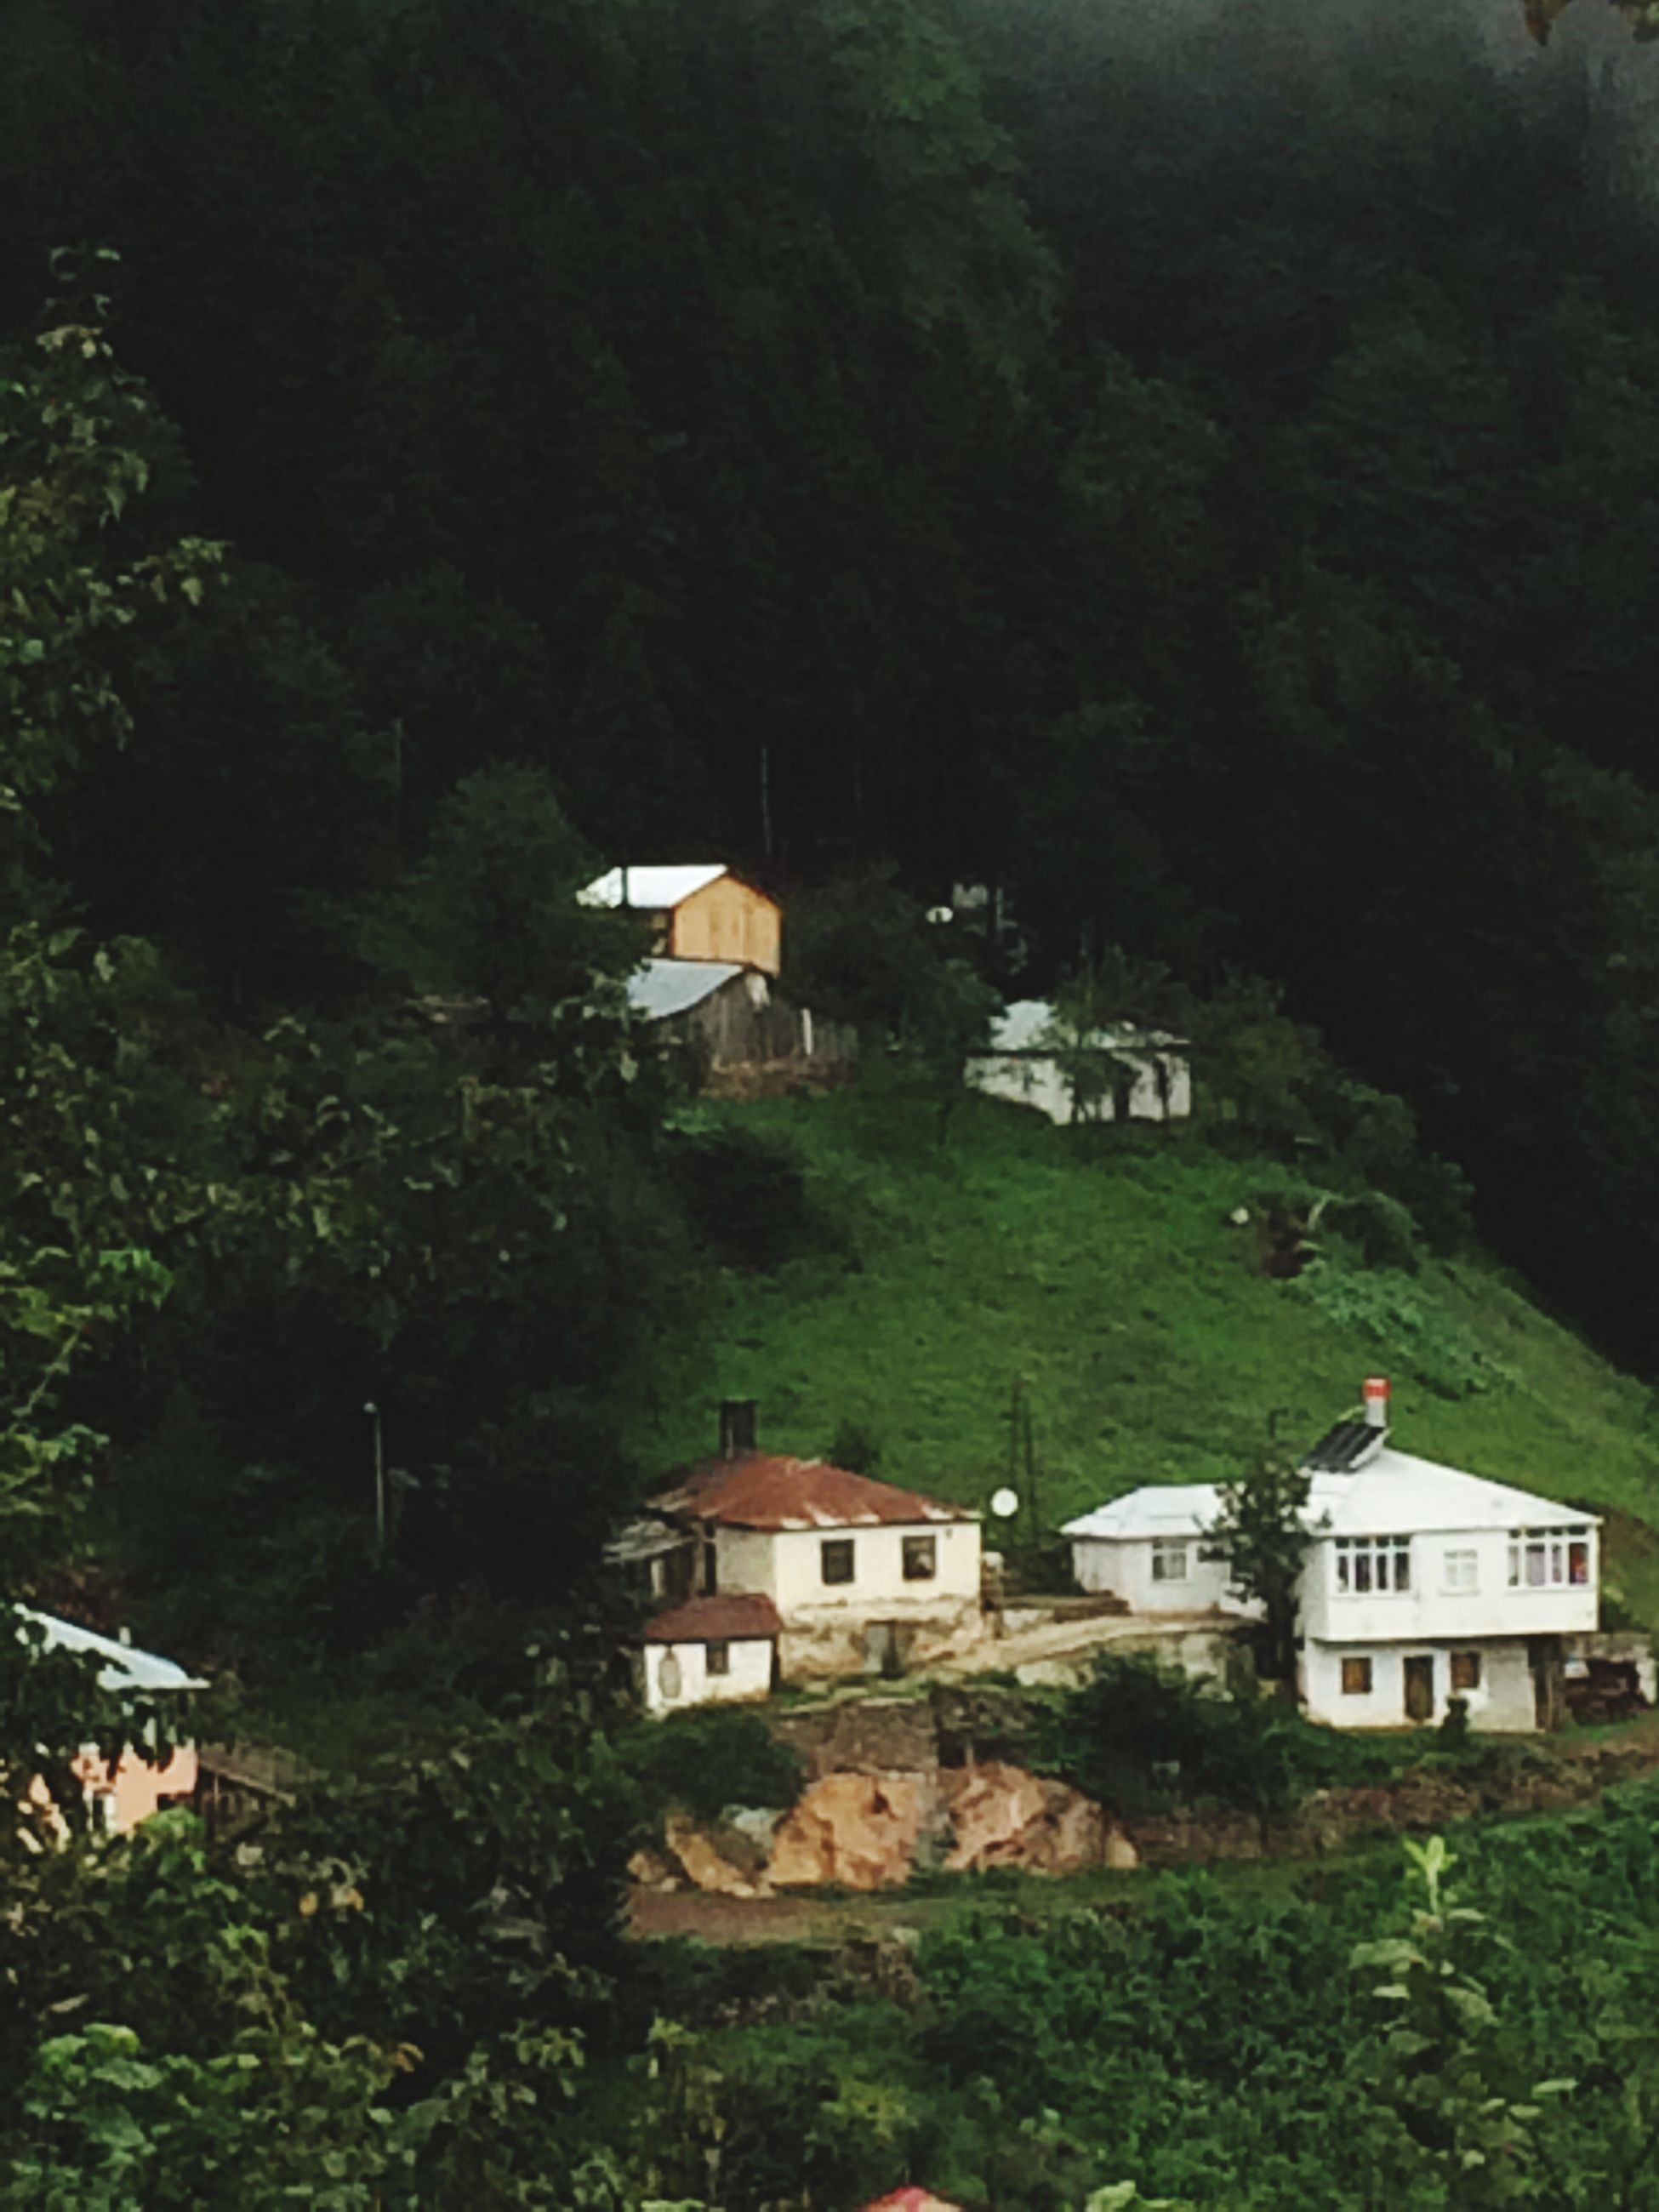 built structure, building exterior, house, architecture, residential structure, tree, residential building, high angle view, residential district, green color, growth, cloud - sky, day, town, outdoors, scenics, mountain, lush foliage, no people, rural scene, remote, non-urban scene, valley, agriculture, farm